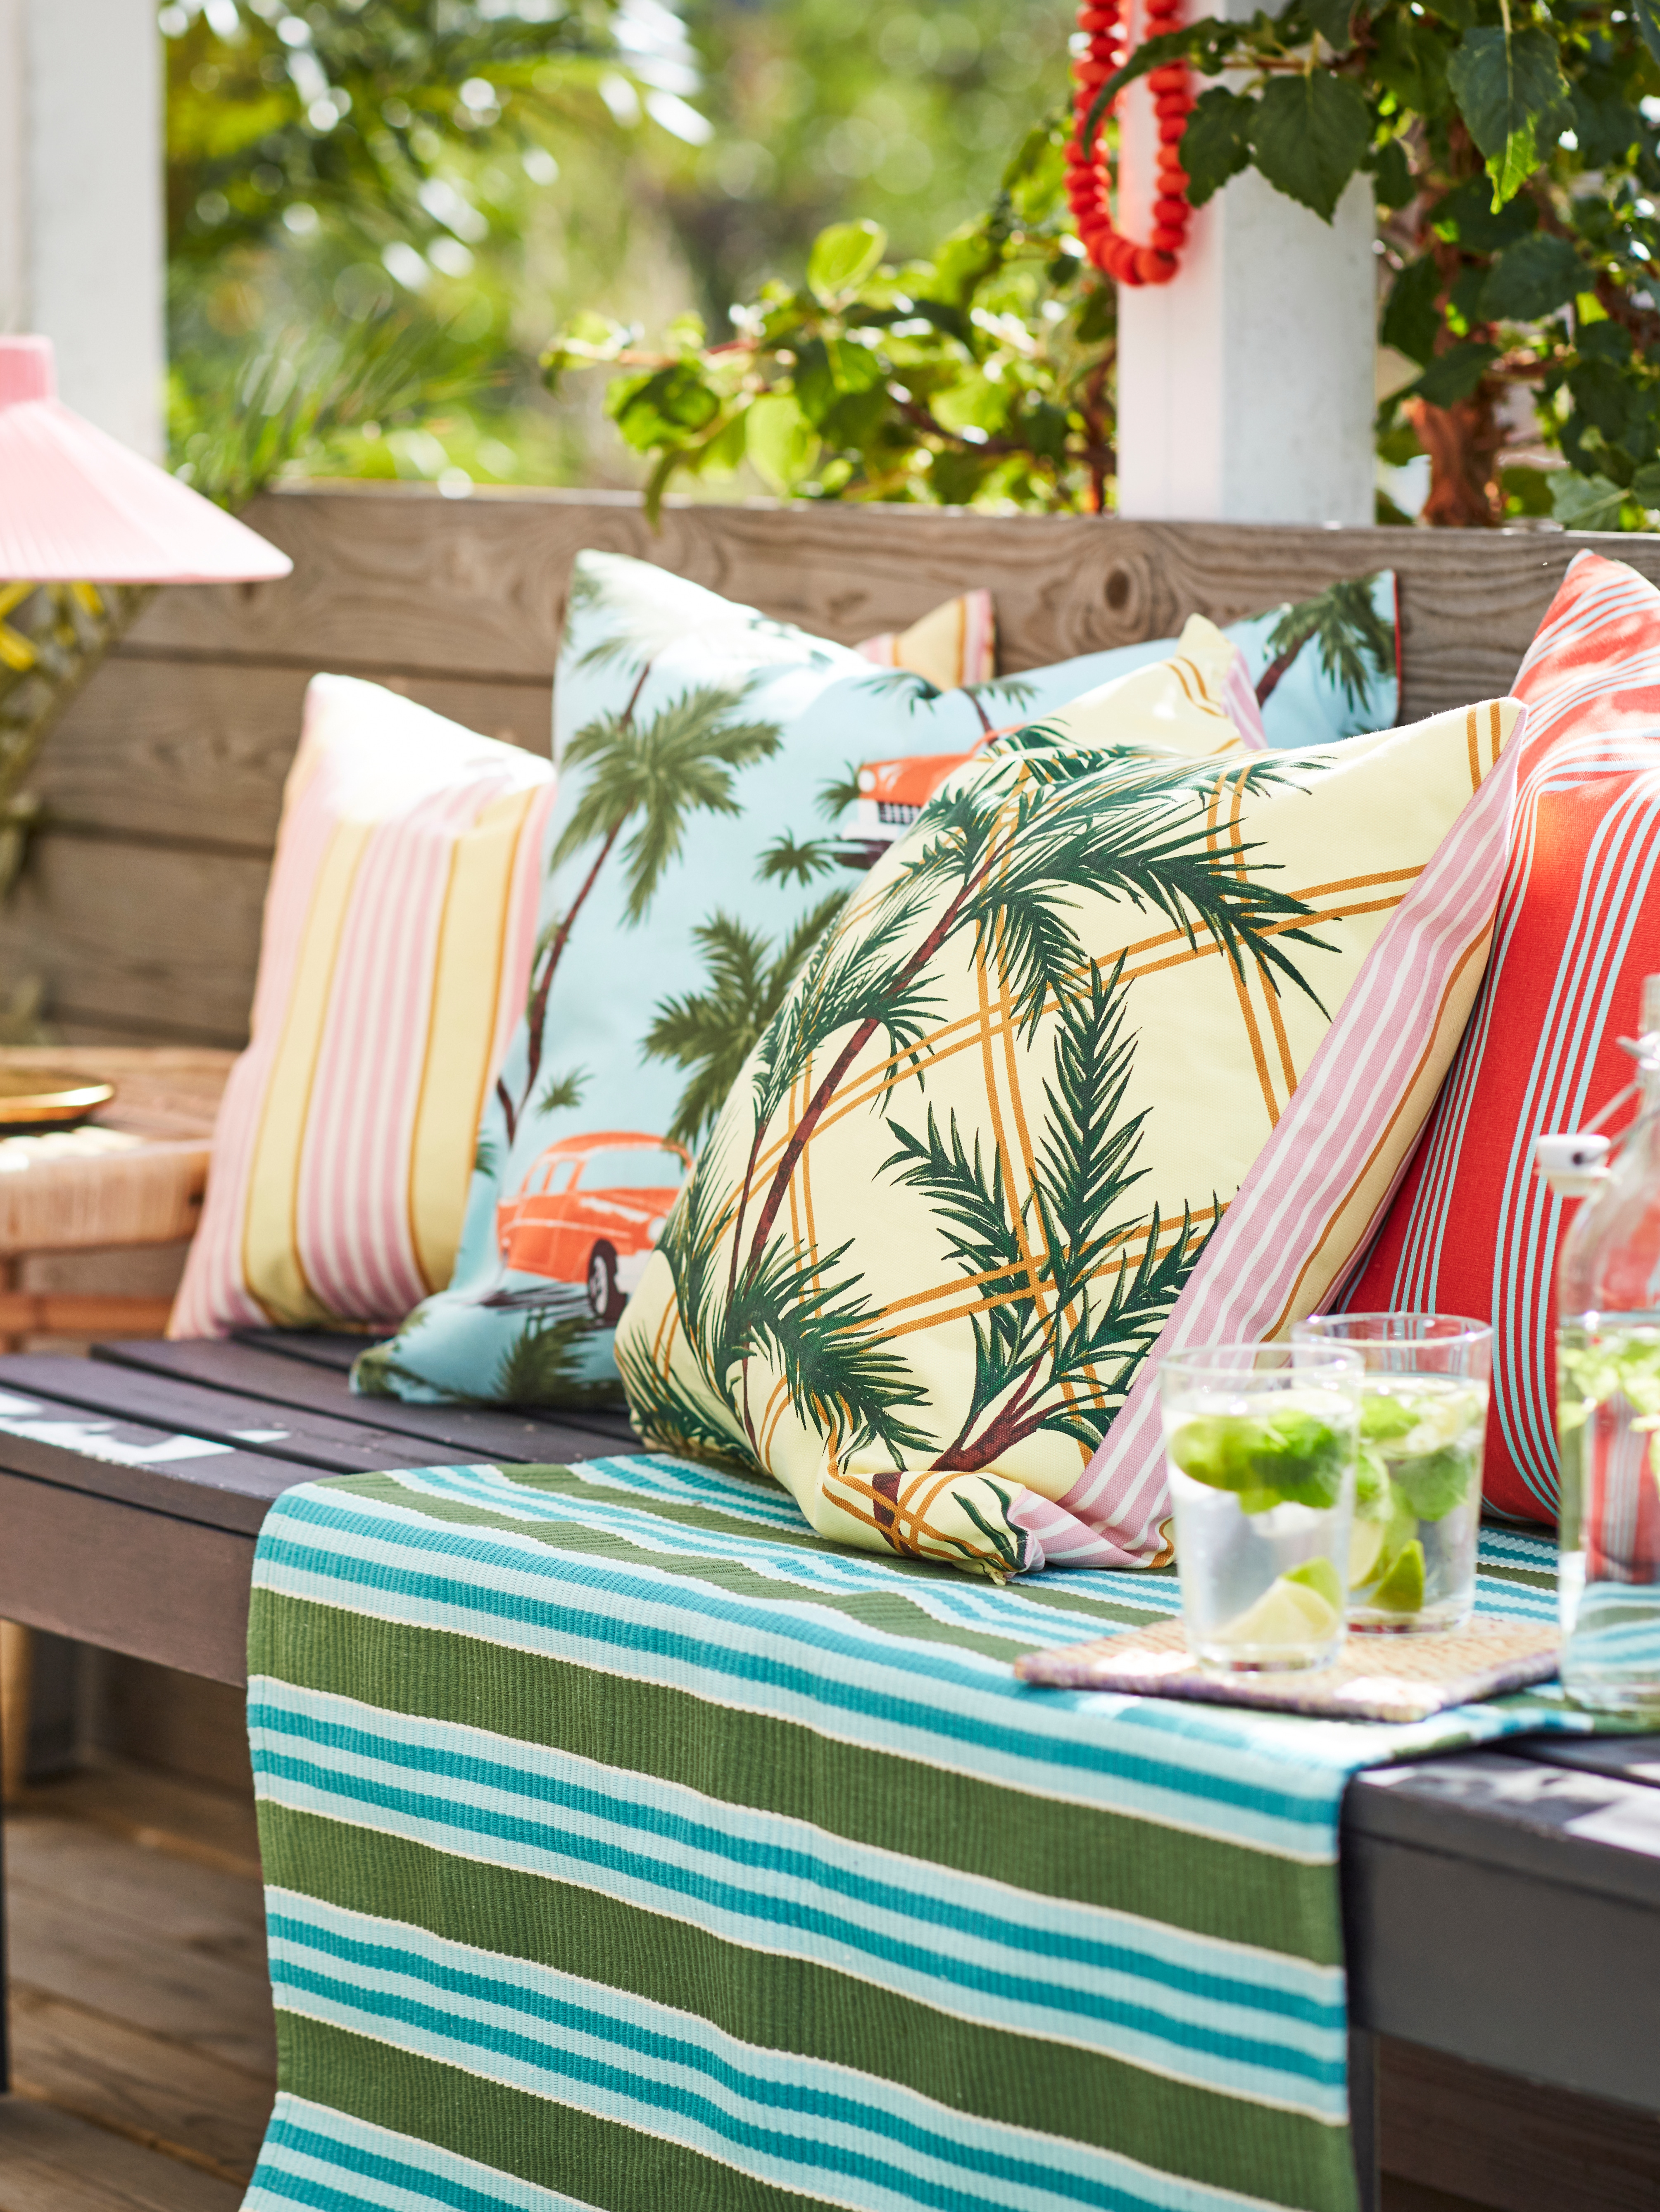 An outdoor bench has many cushions, including a SOMMAR 2020 blue/multicolour cushion cover with palm trees and vintage cars.